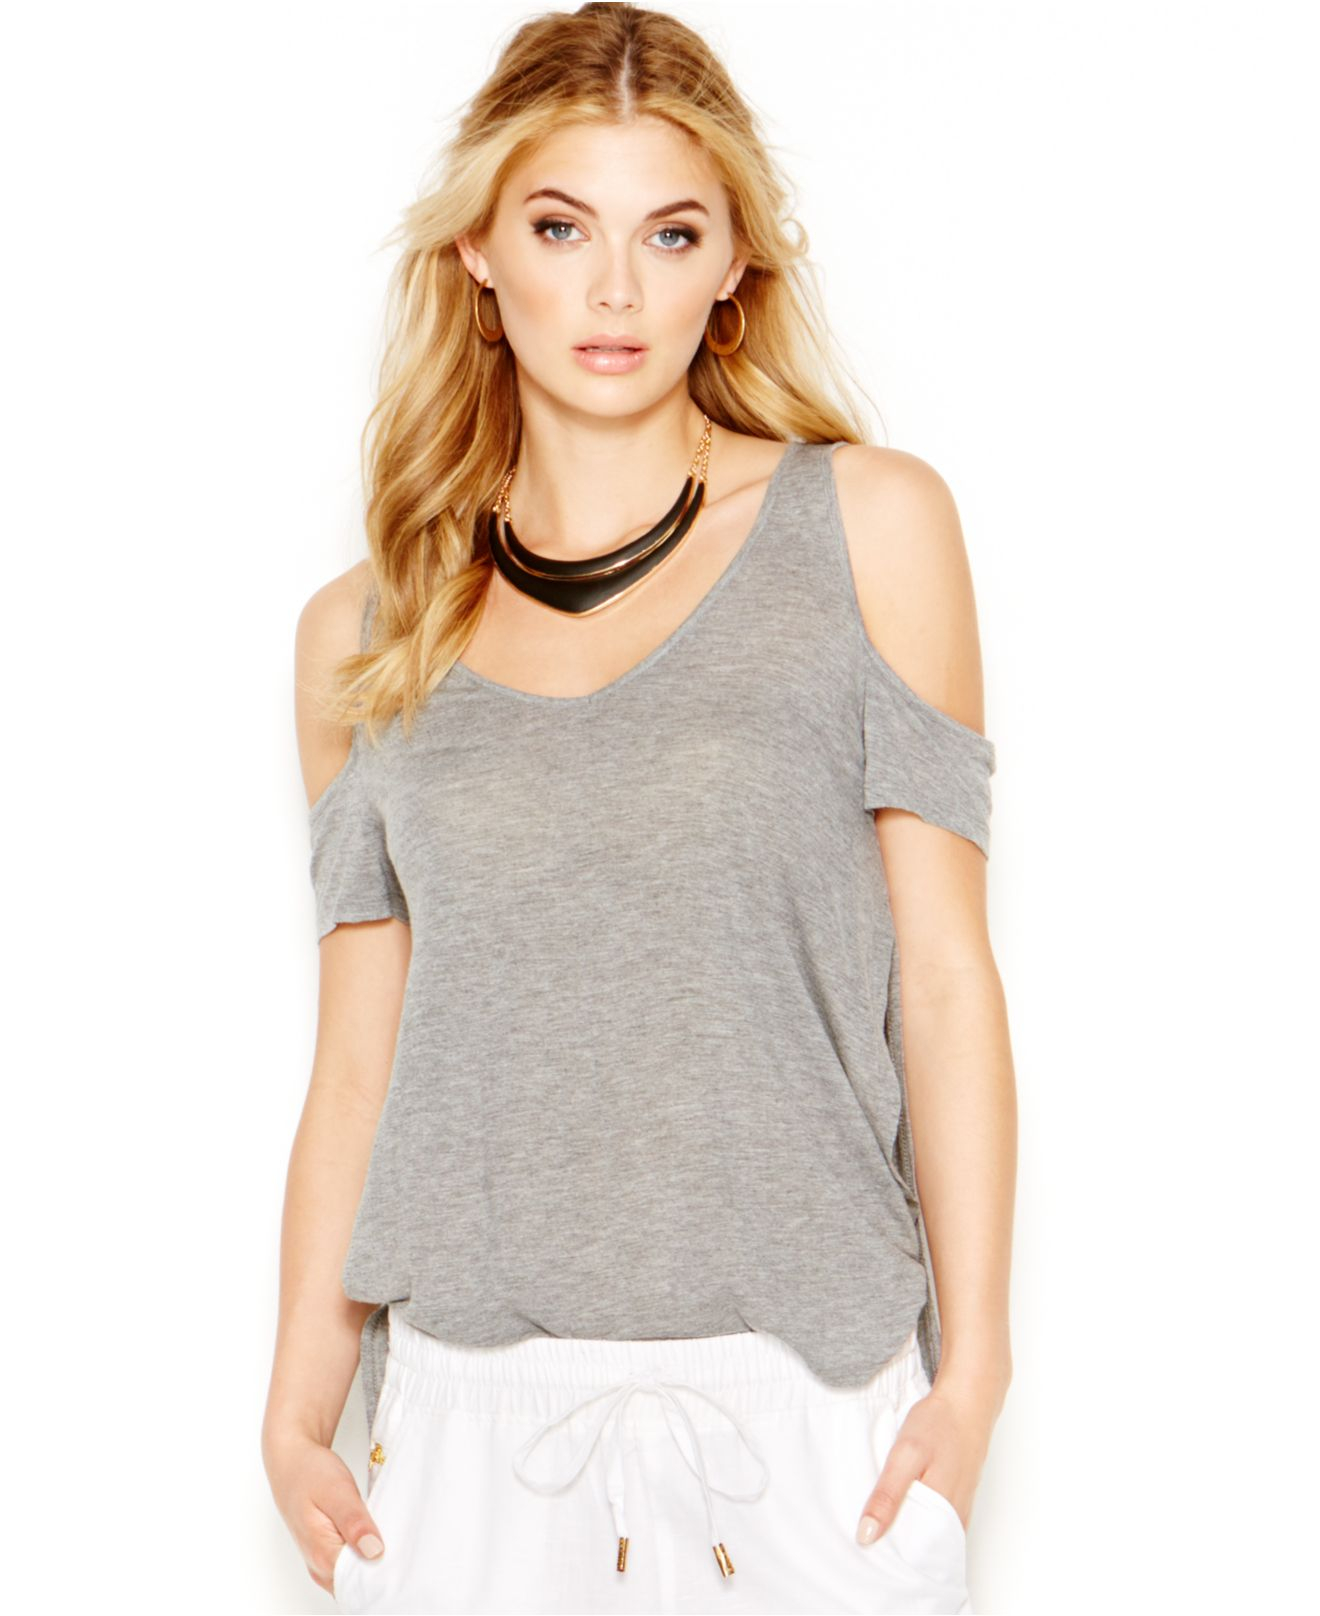 5ee3dff38b83b Lyst - Guess Cold-Shoulder Short-Sleeve Top in Gray